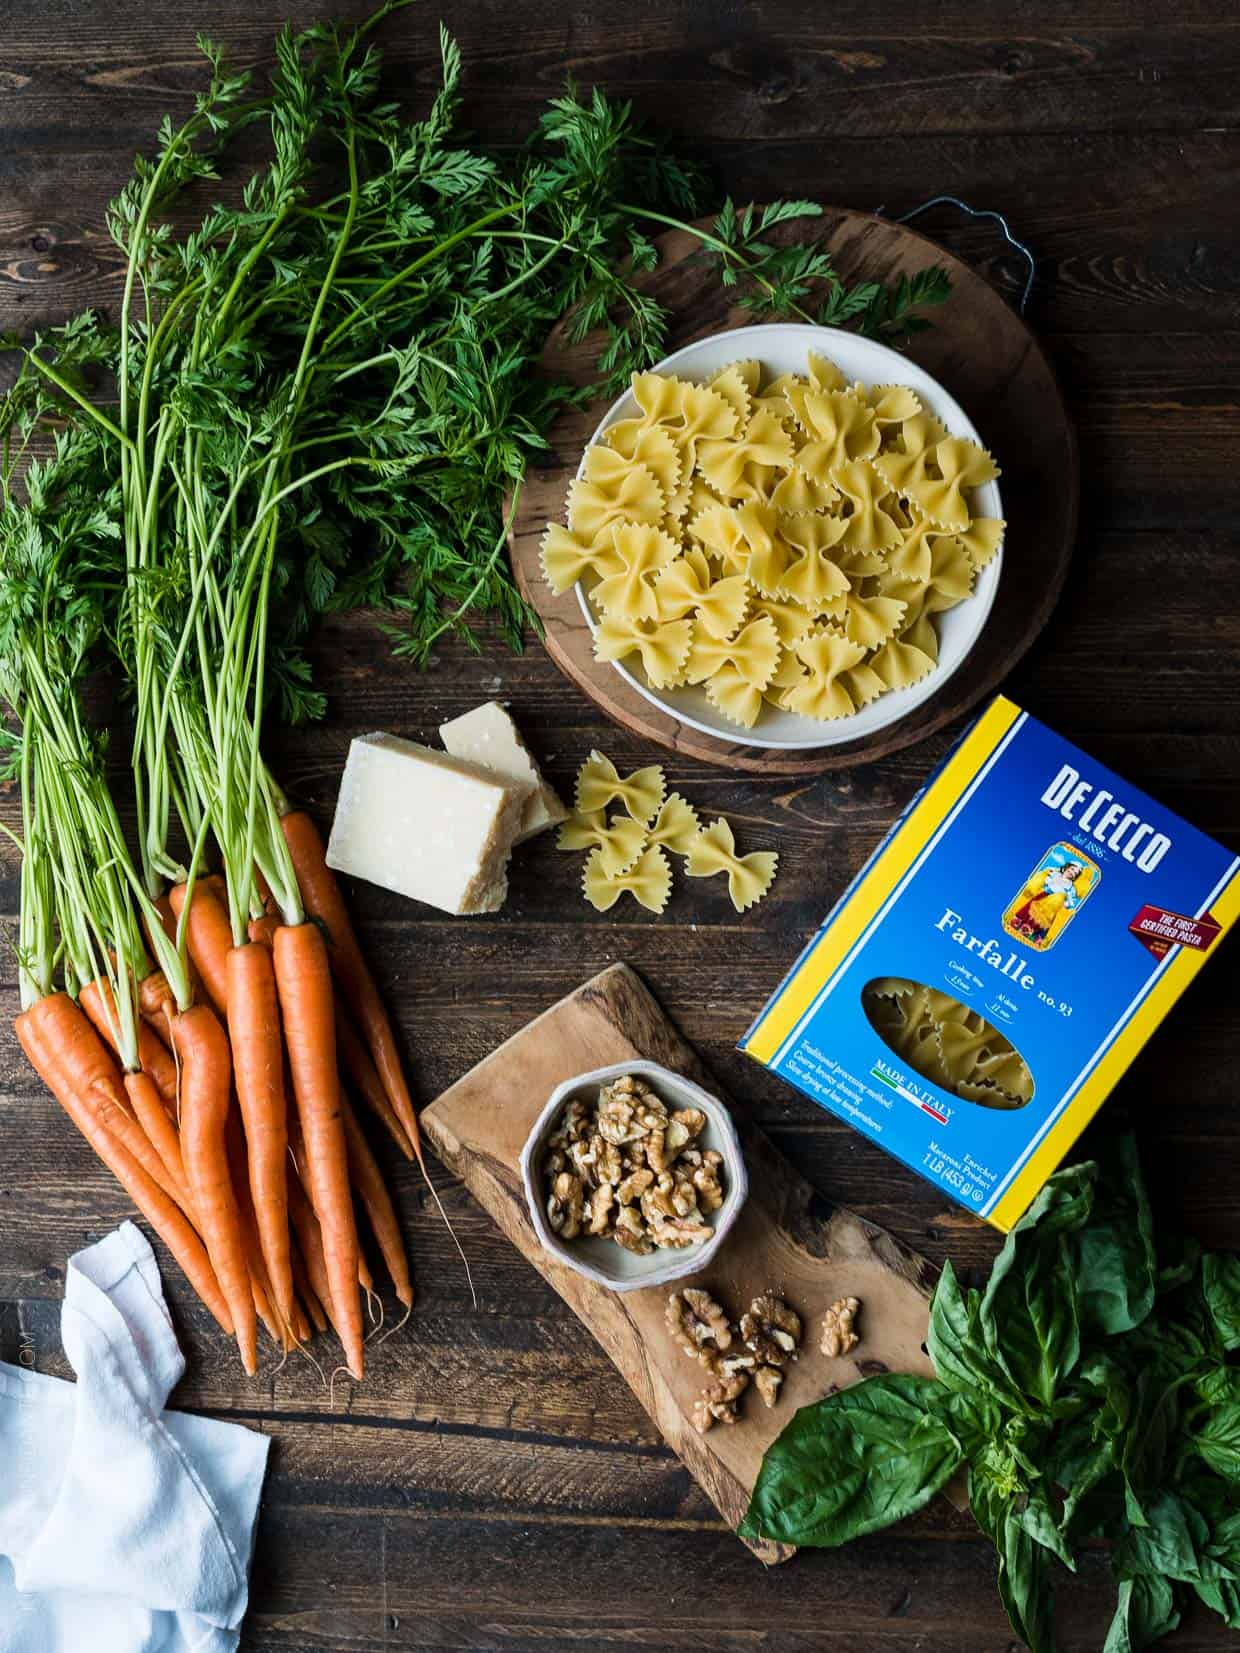 A wooden surface topped with all the ingredients needed to make Farfalle with Roasted Carrot Pesto, Parmesan and Toasted Walnuts.